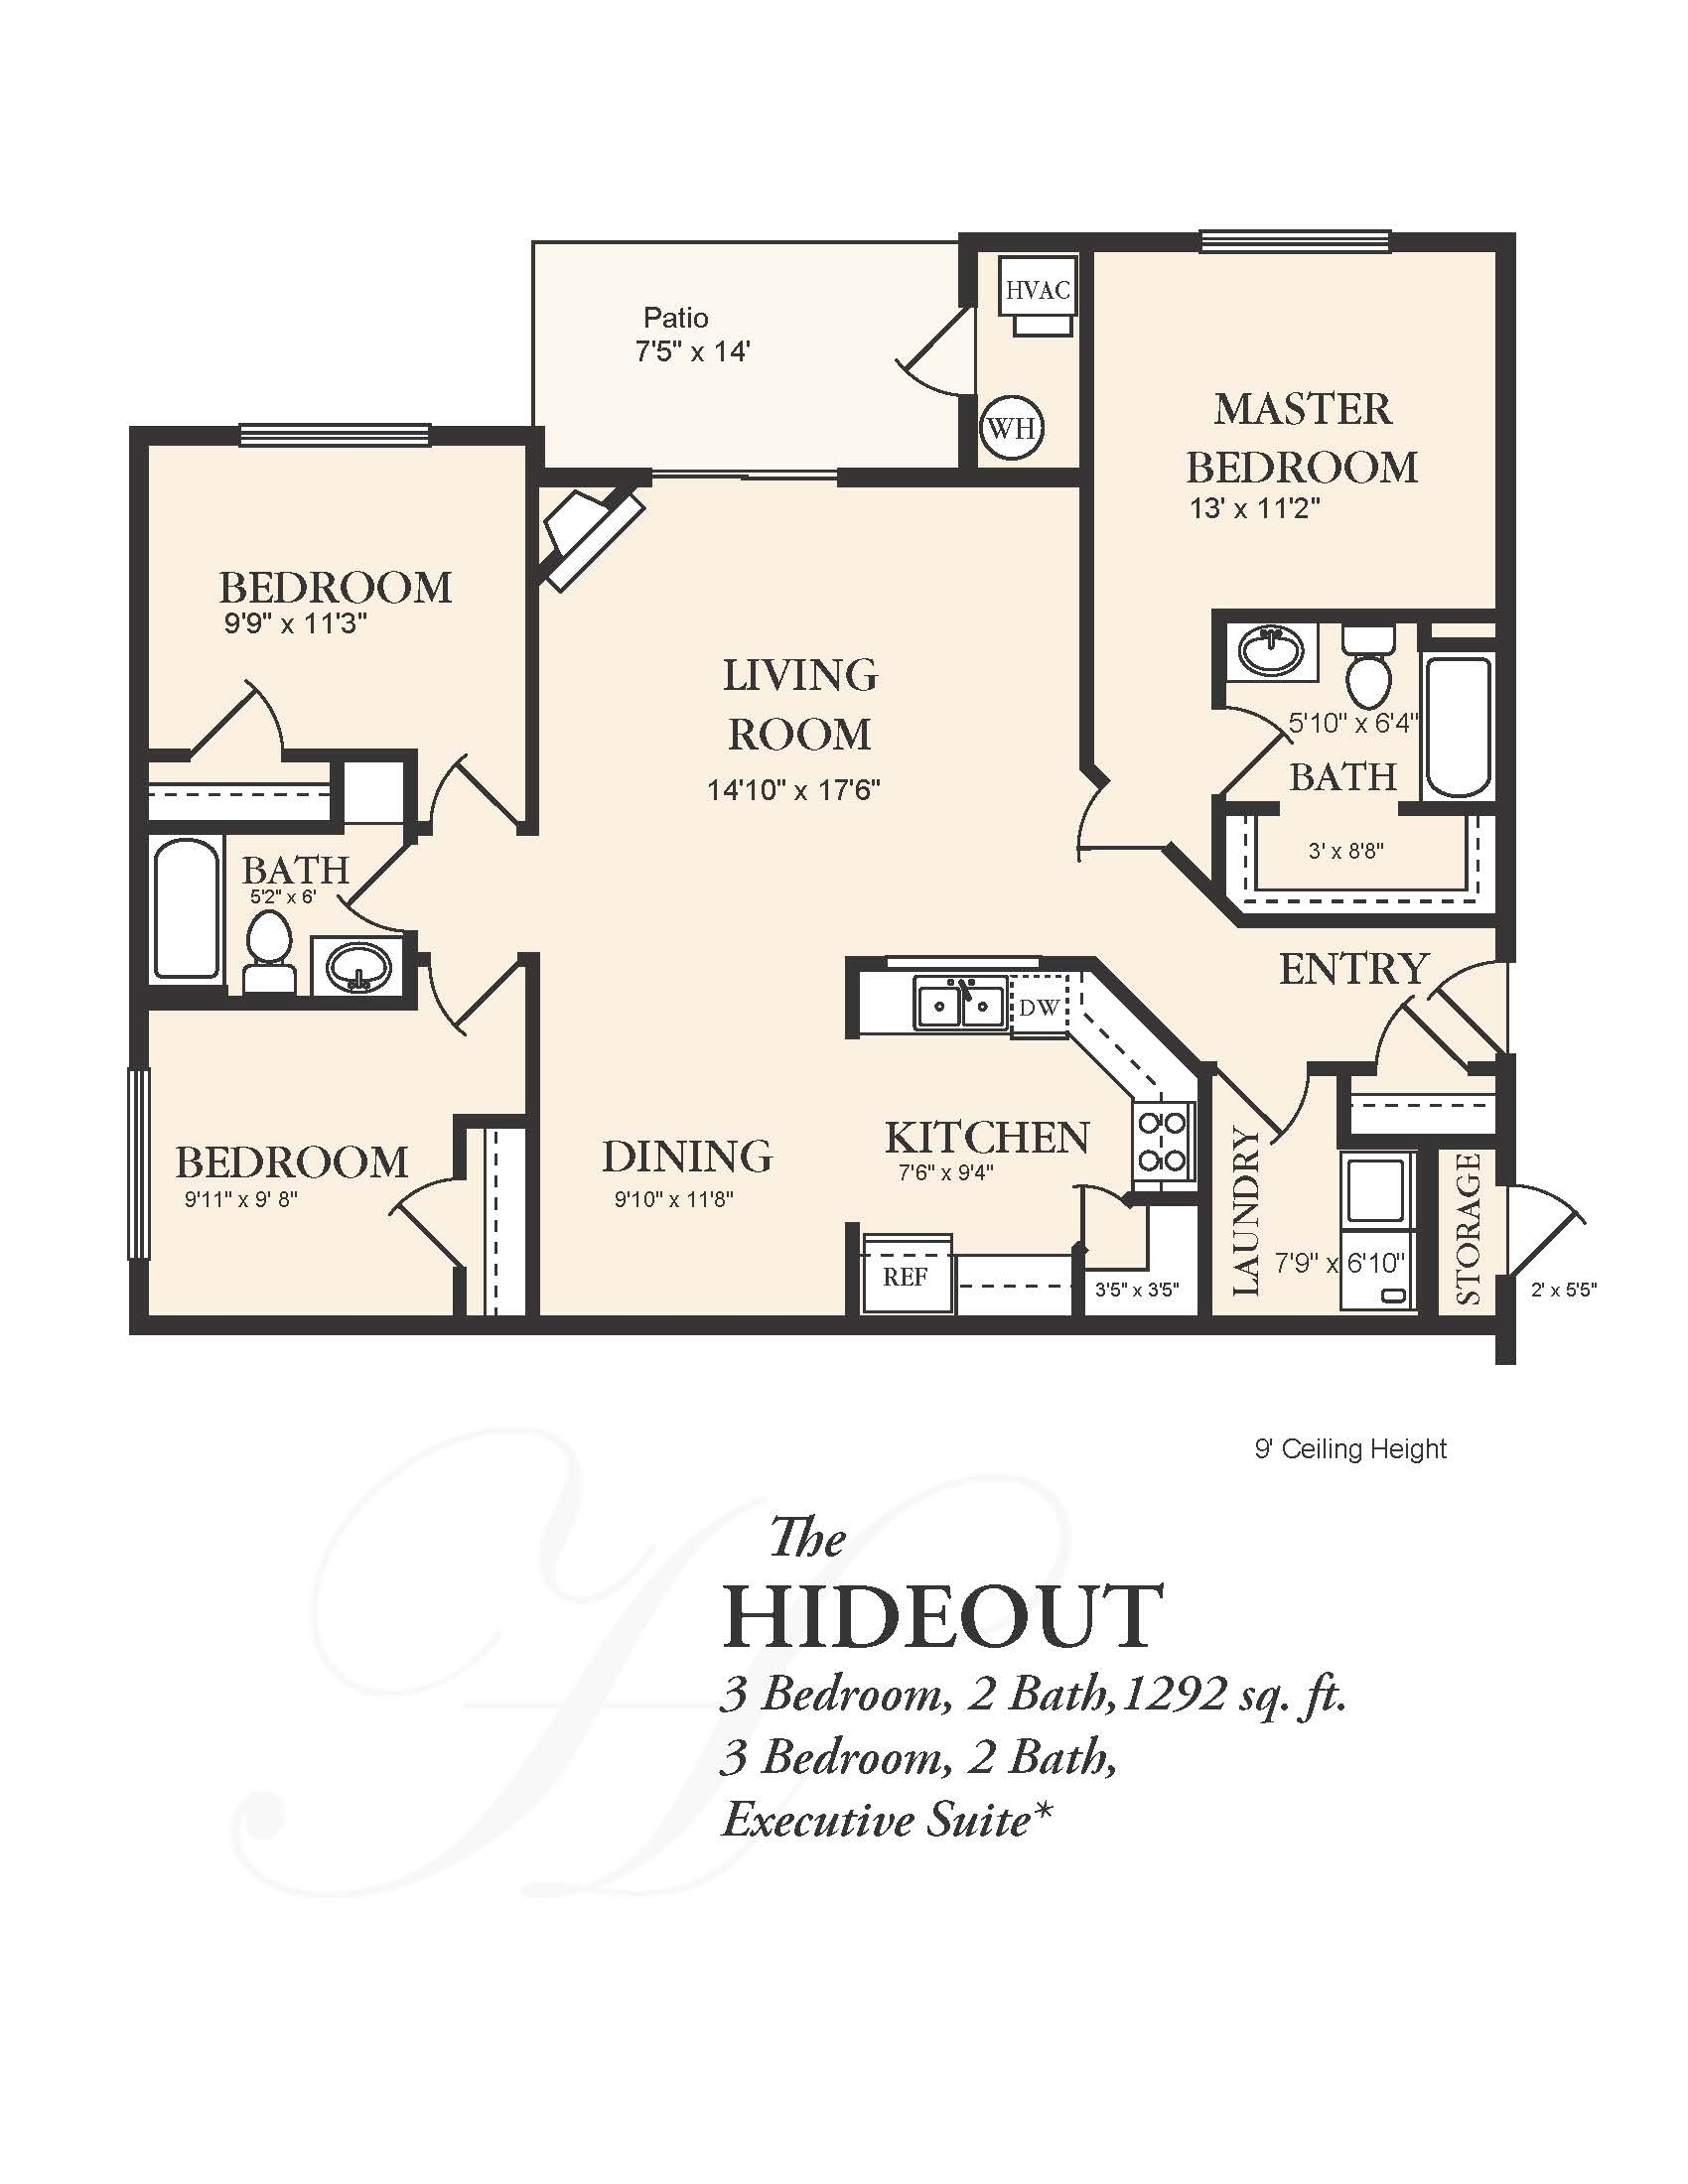 3 Bedroom 2 Bathroom Apartment Priced At 1347 1292 1380